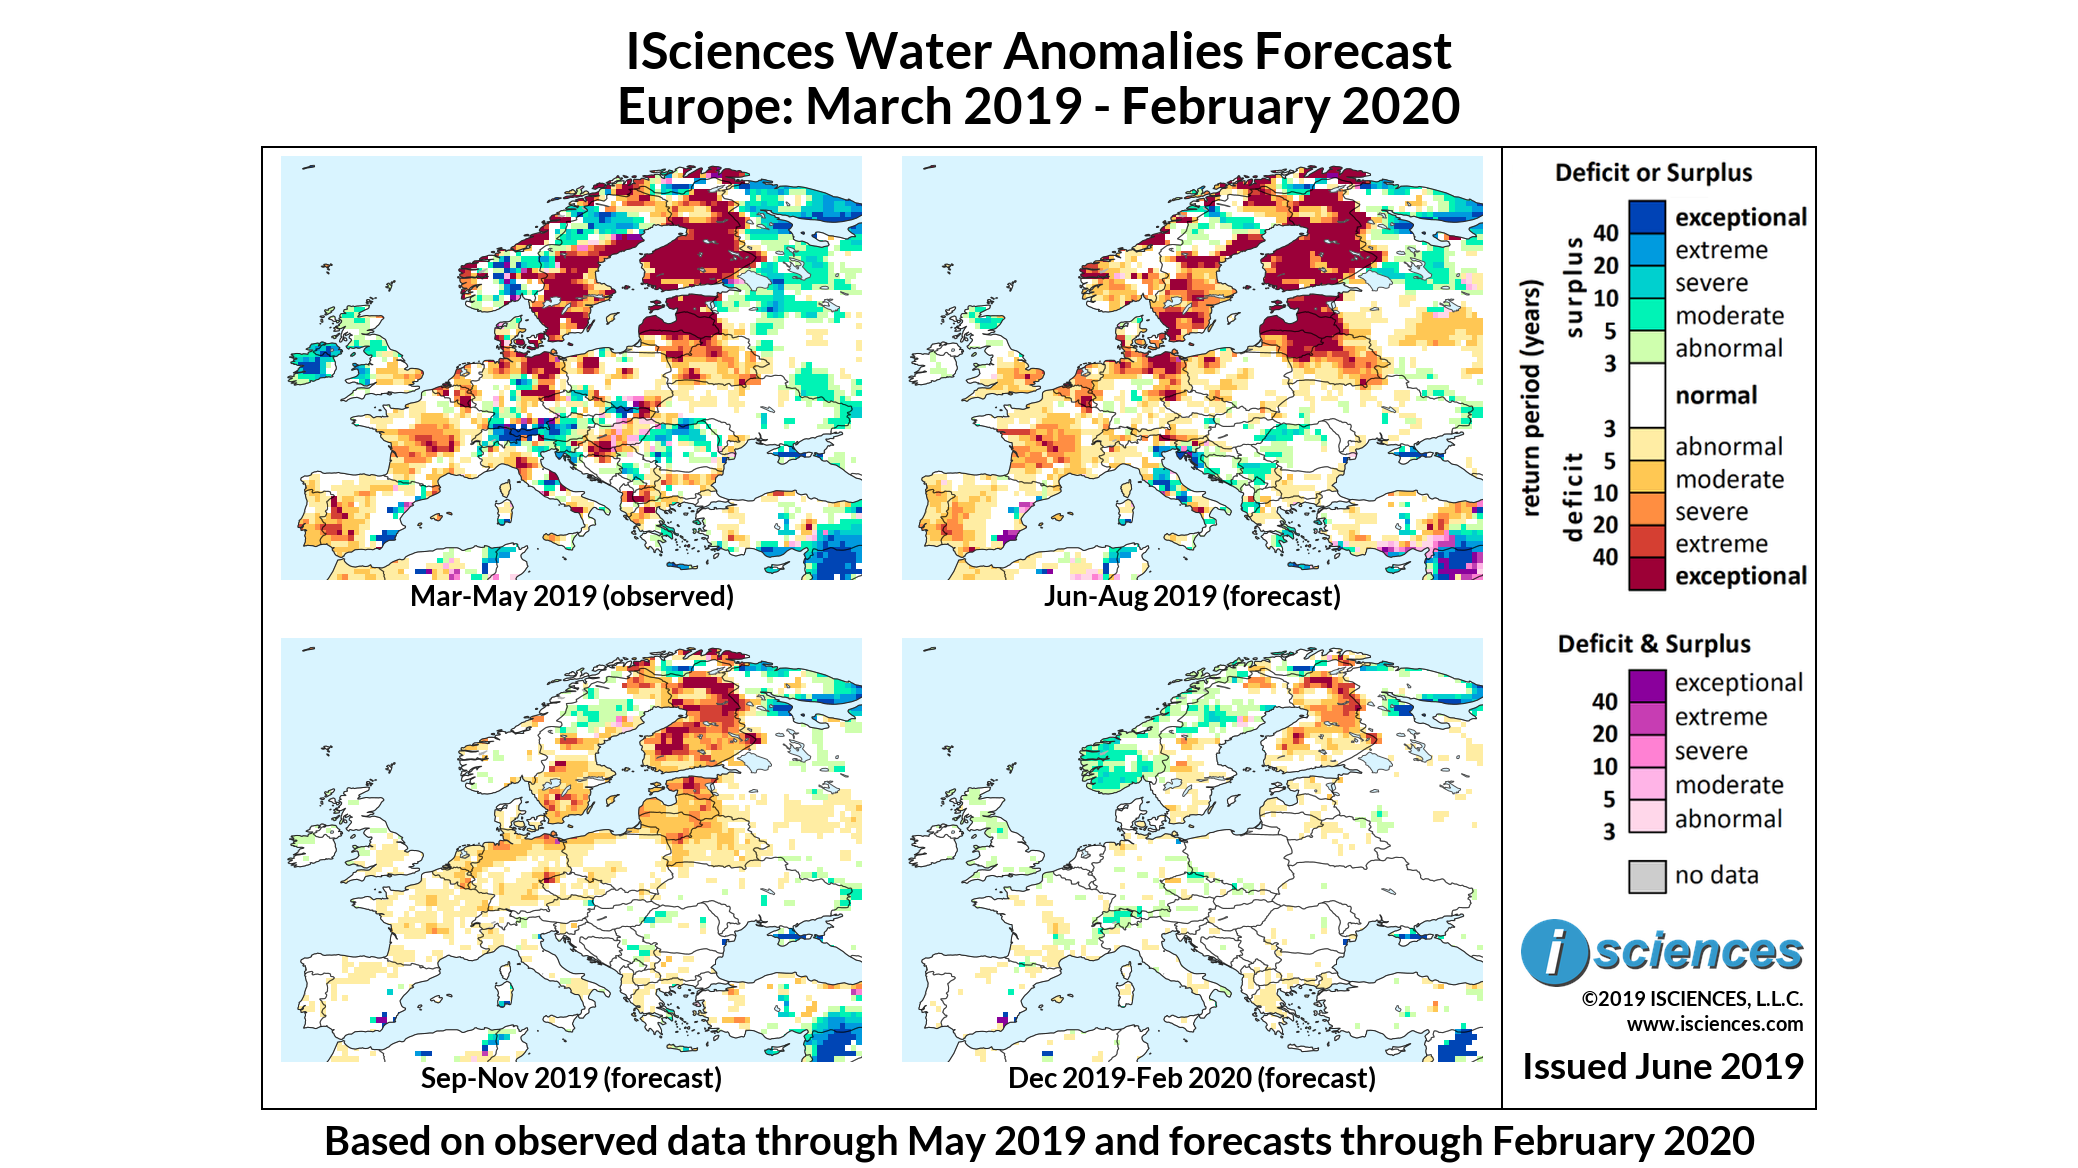 ISciences_R201905_Europe_Composite_Adjusted_201903-202002_3mo_panel.png